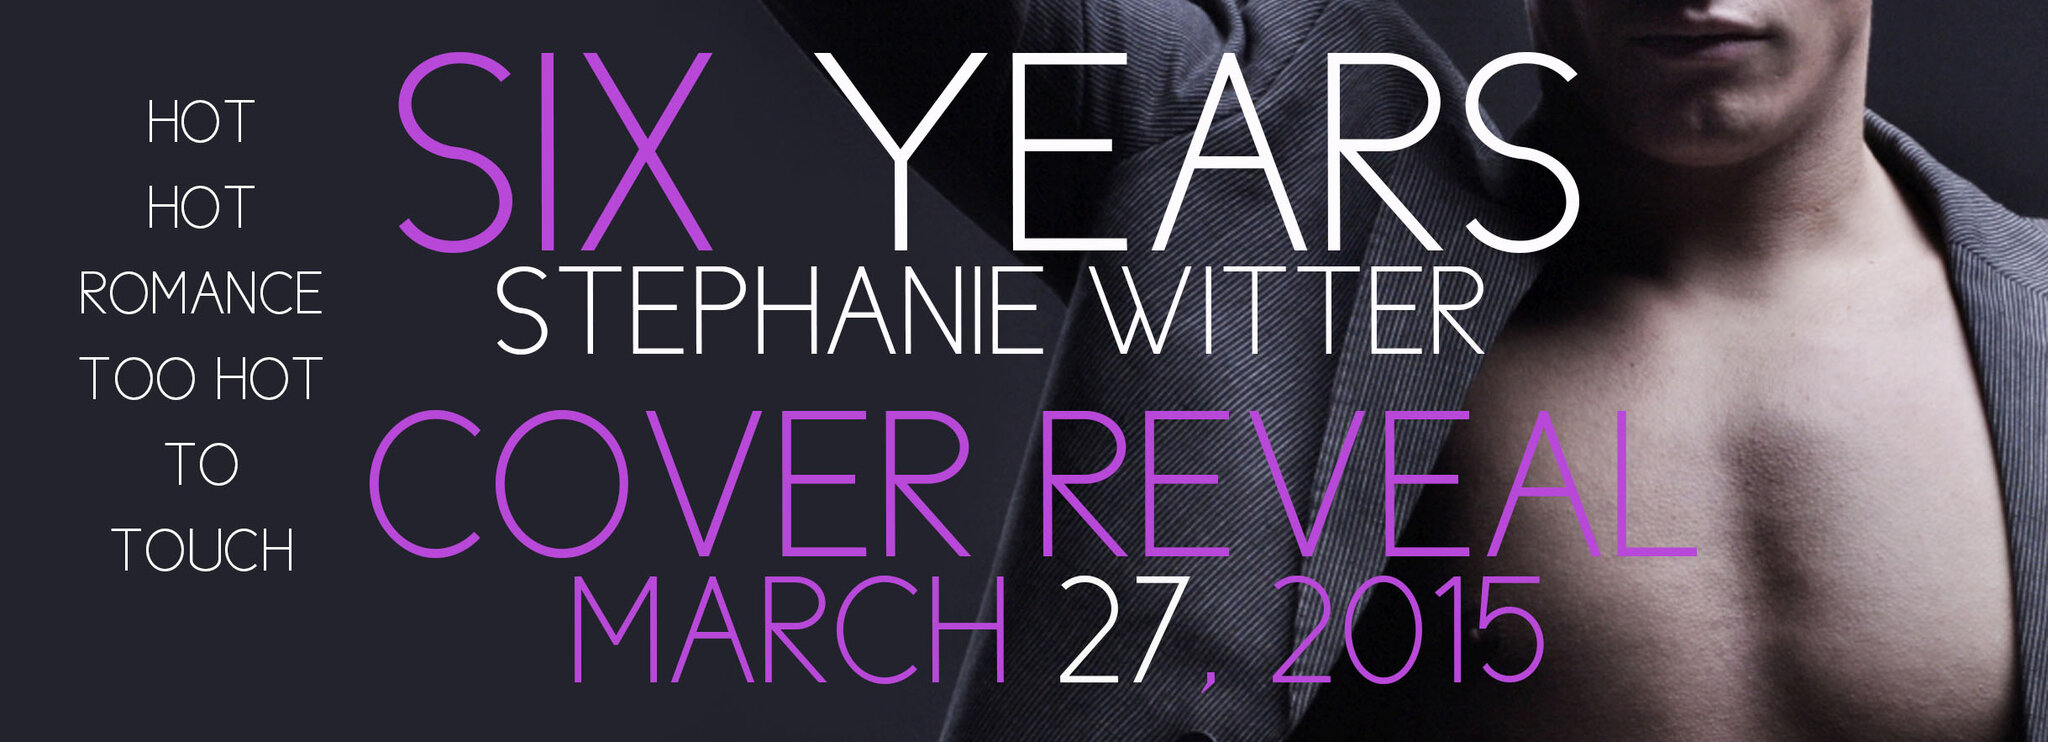 Stephanie___6years_Cover_Reveal